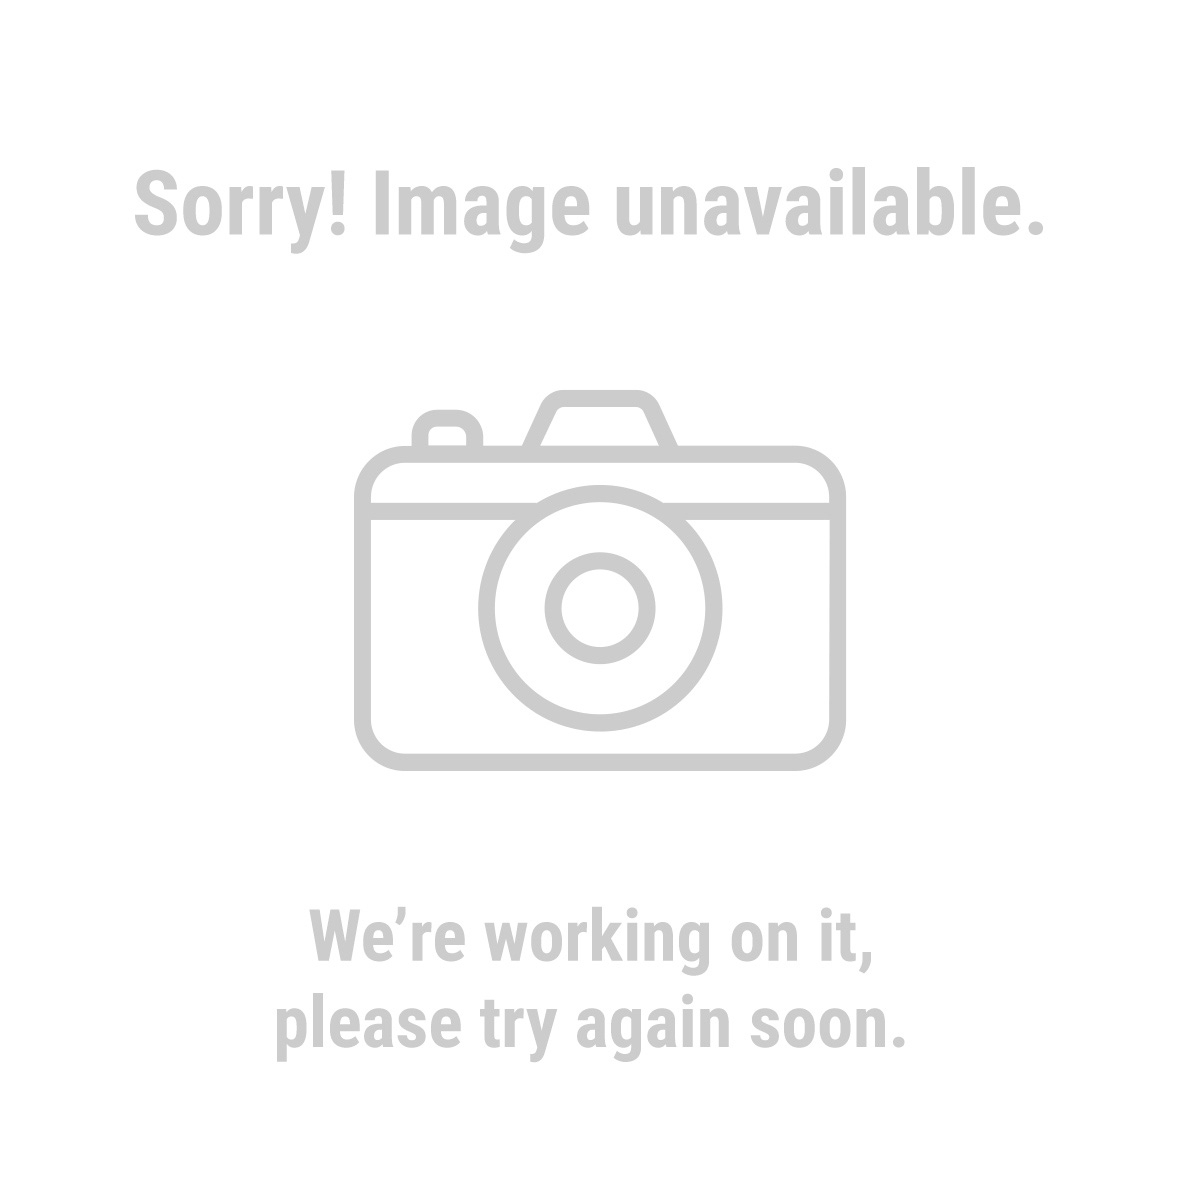 6 Piece Red Marking Crayons